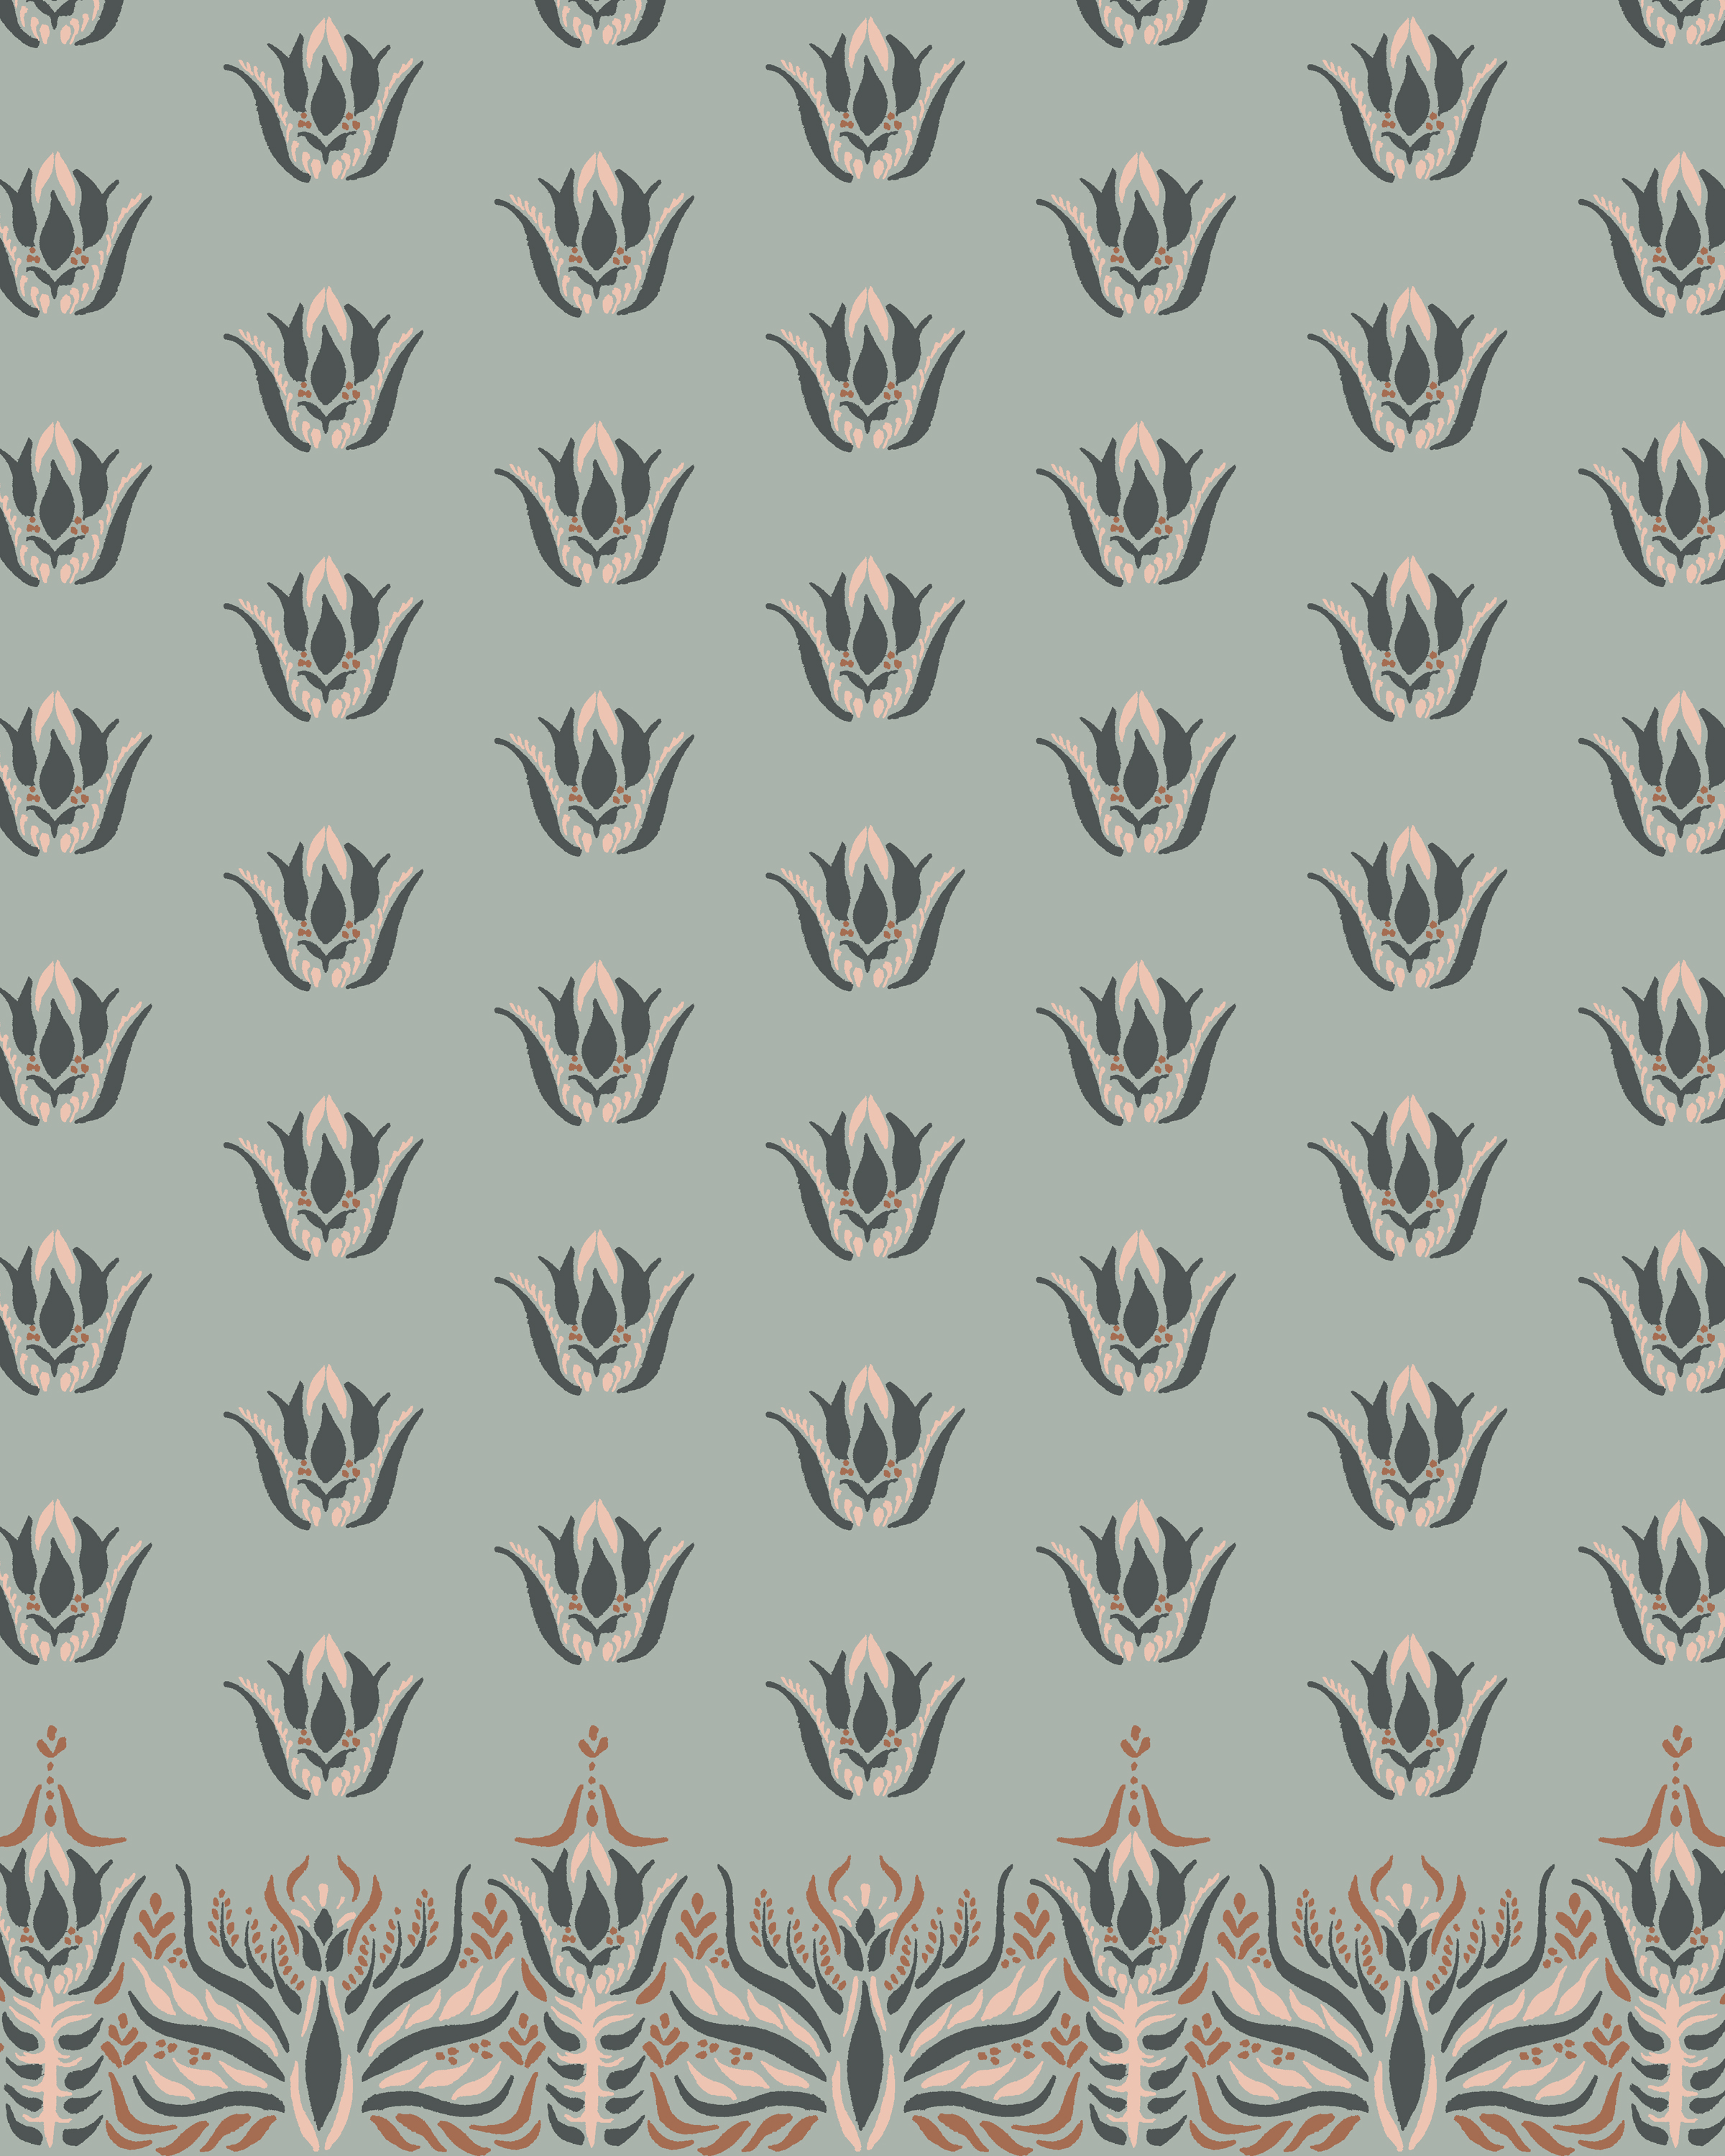 Little Indian Motifs Border with Repeat Sage.jpg